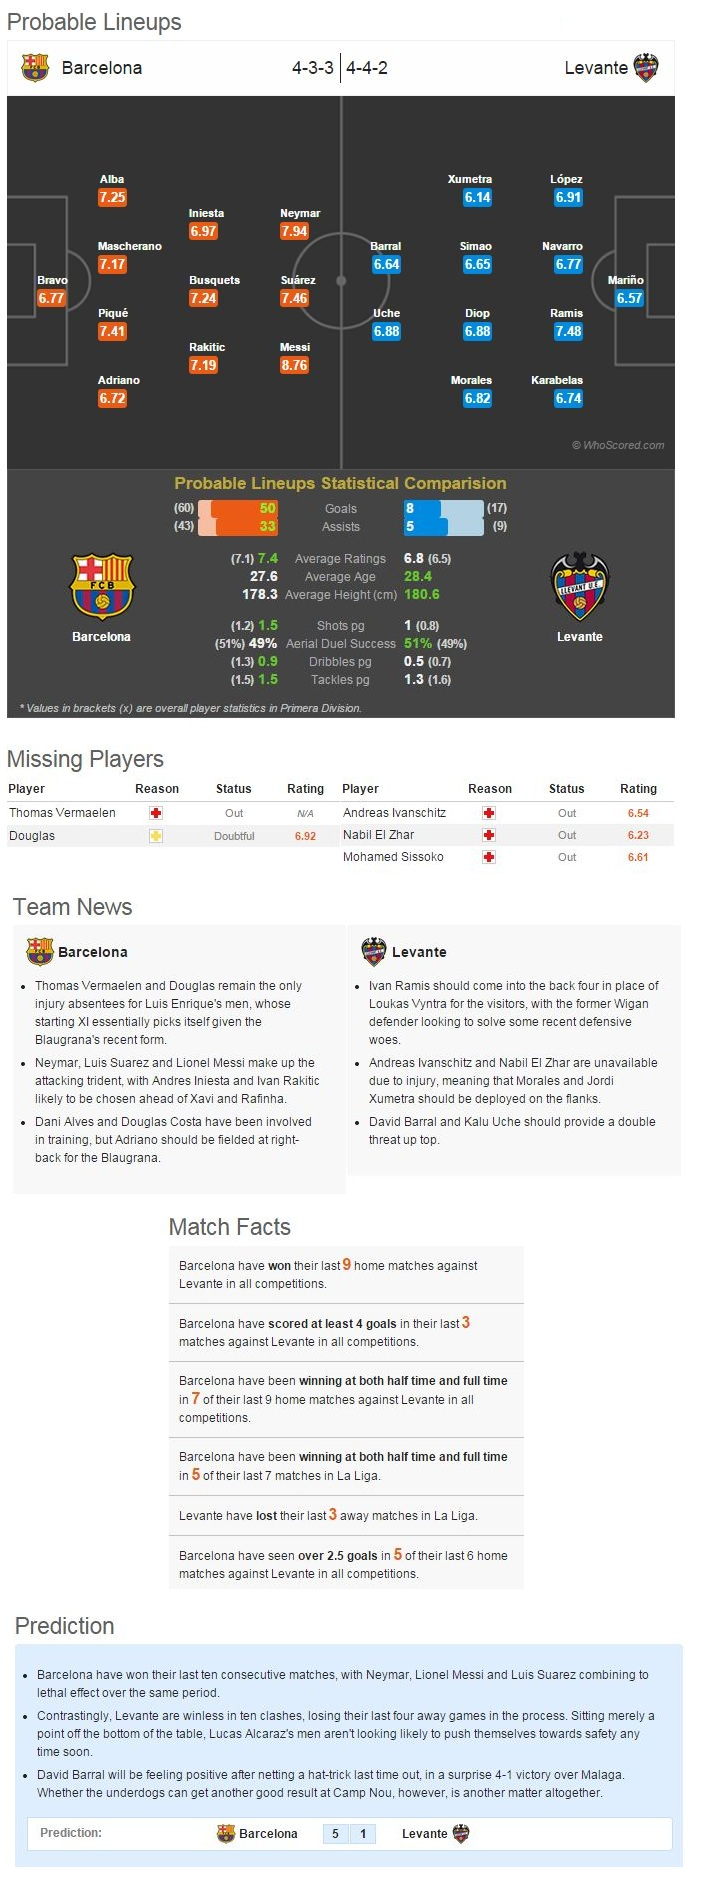 Barcelona-Levante Statistical Preview